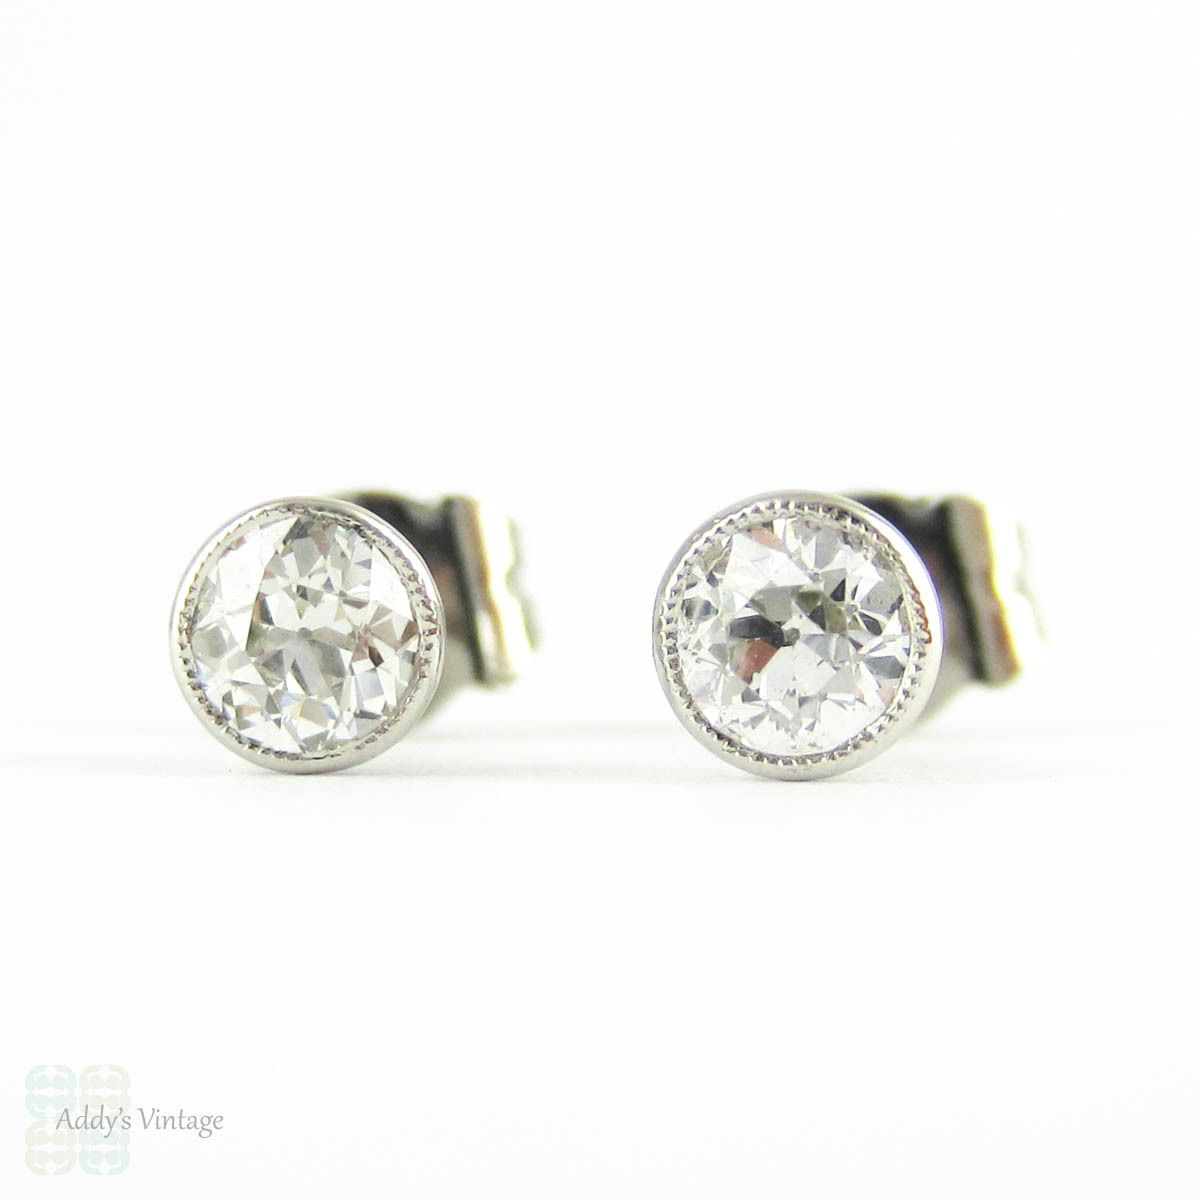 solitaire sl color set products silver zirconia cubic choose stud round sterling rd cr sbz bezel earrings